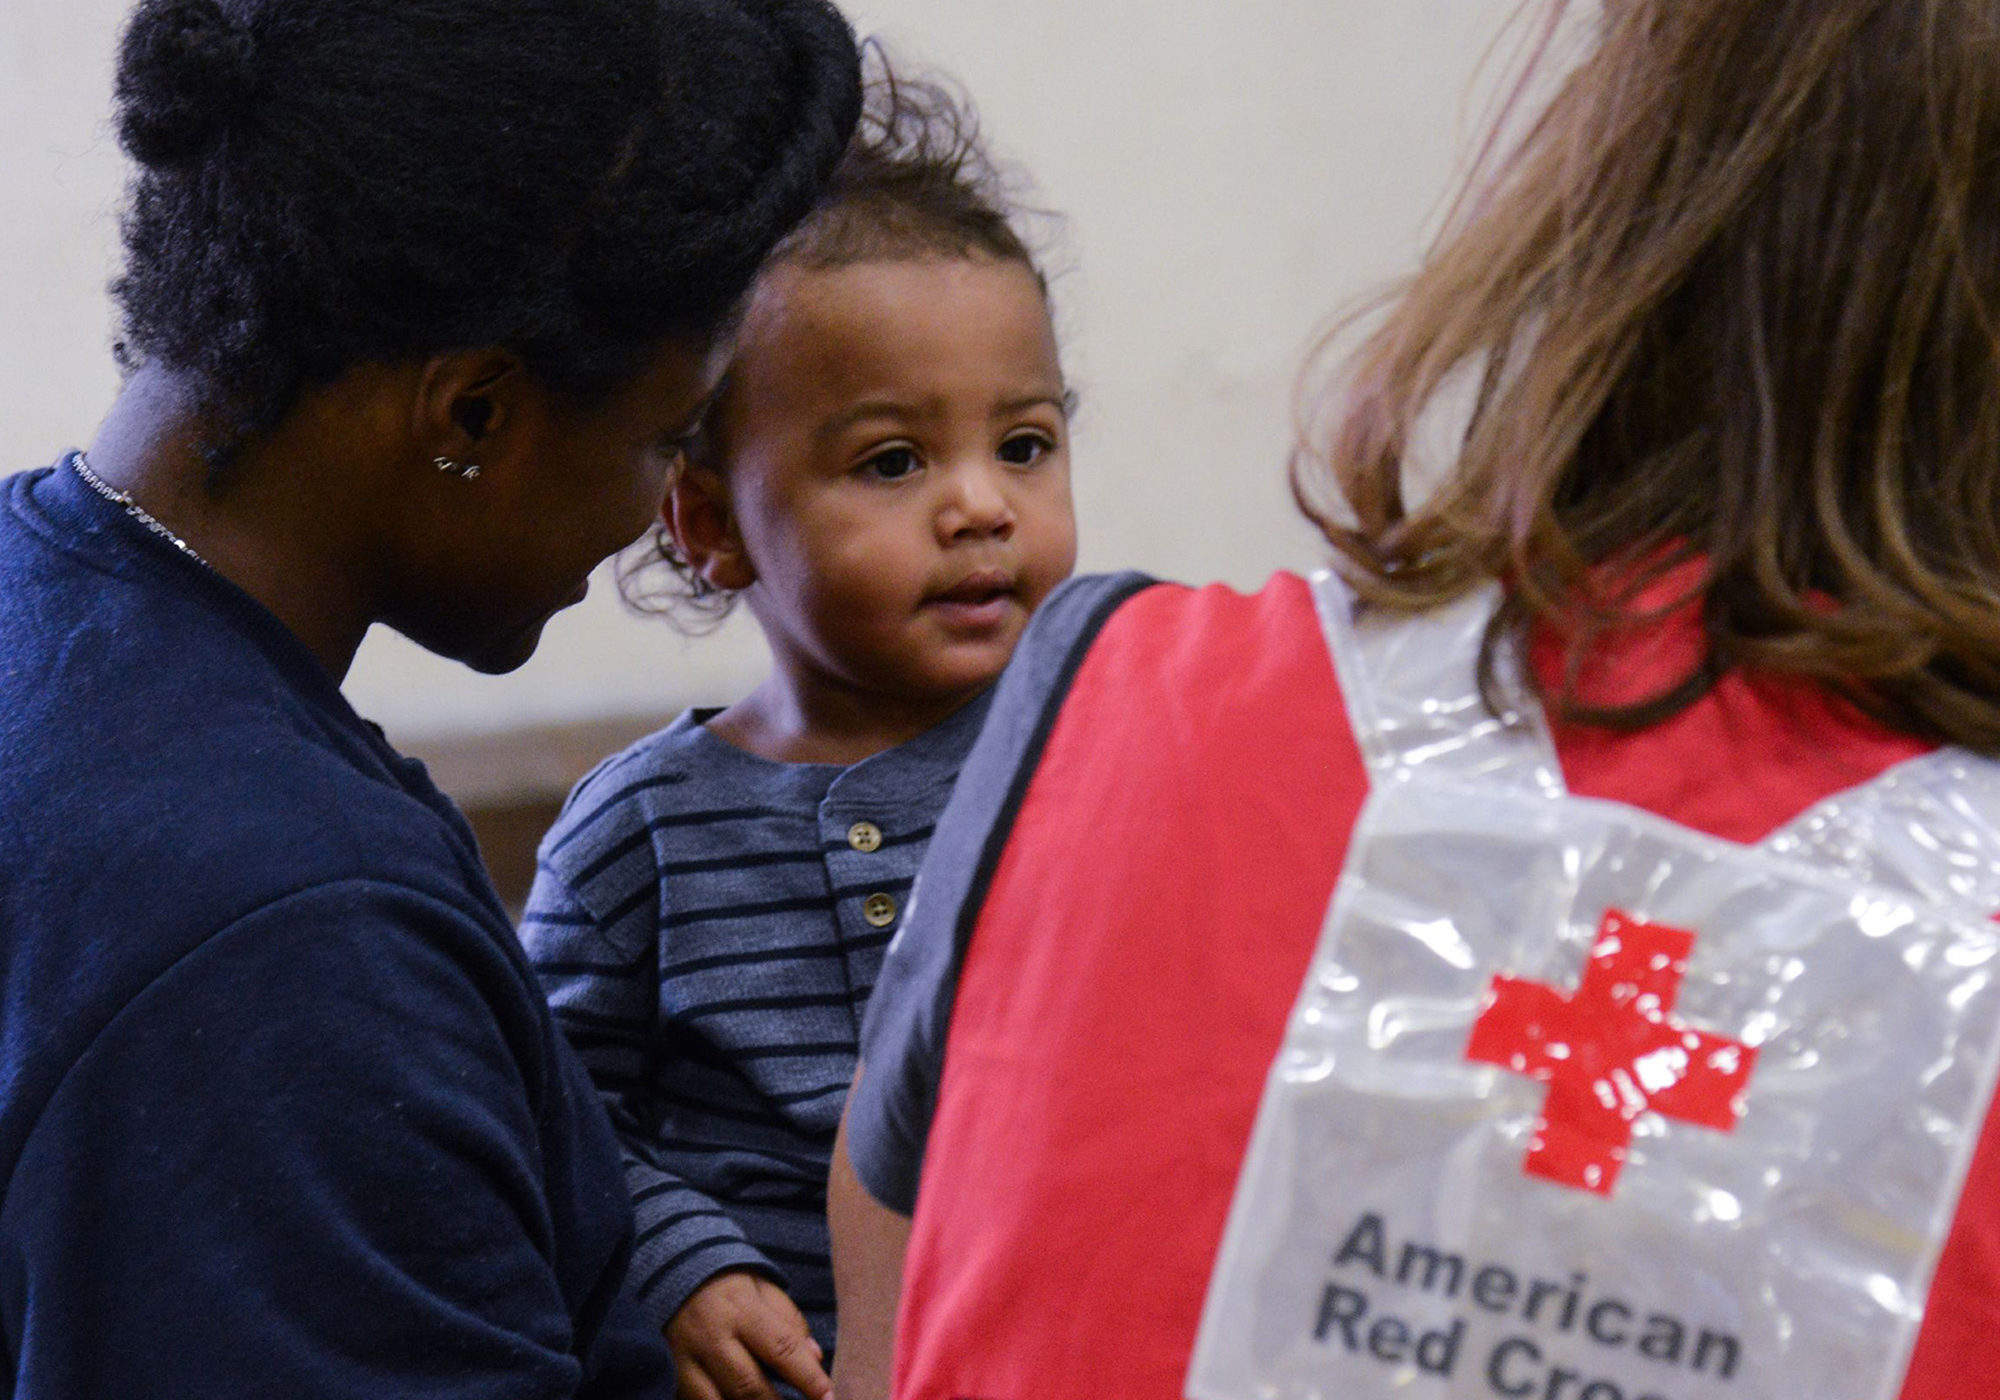 American Red Cross in action